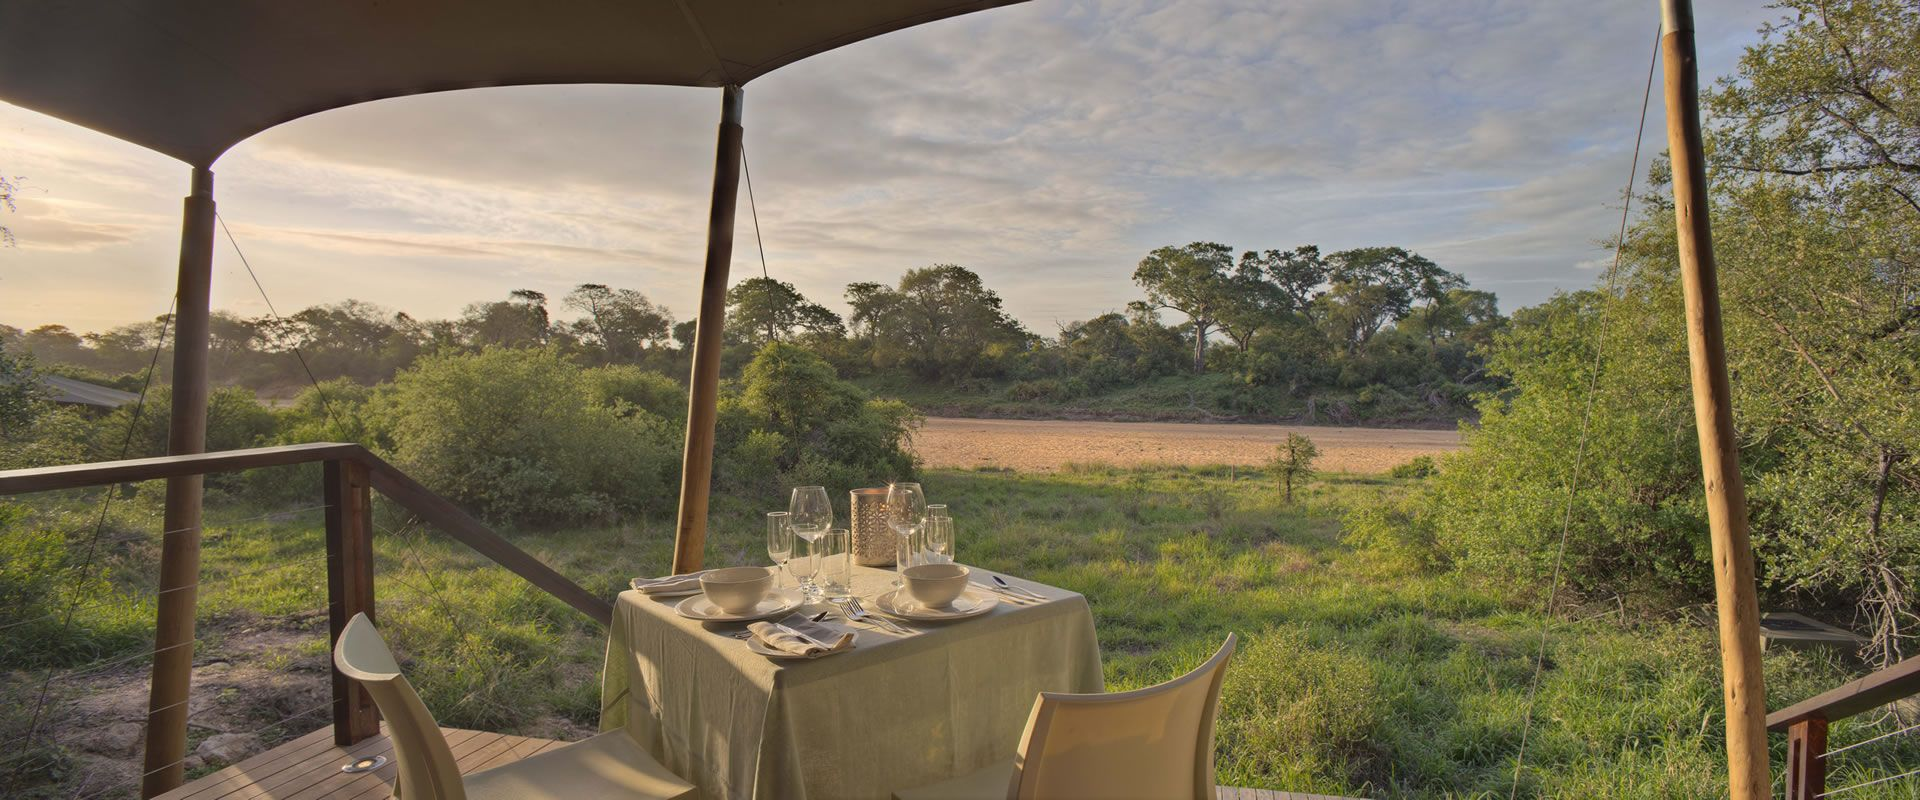 At 53 000 hectares, Timbavati Private Reserve sports astonishing game diversity for nature lovers to see the much sought after big 5.